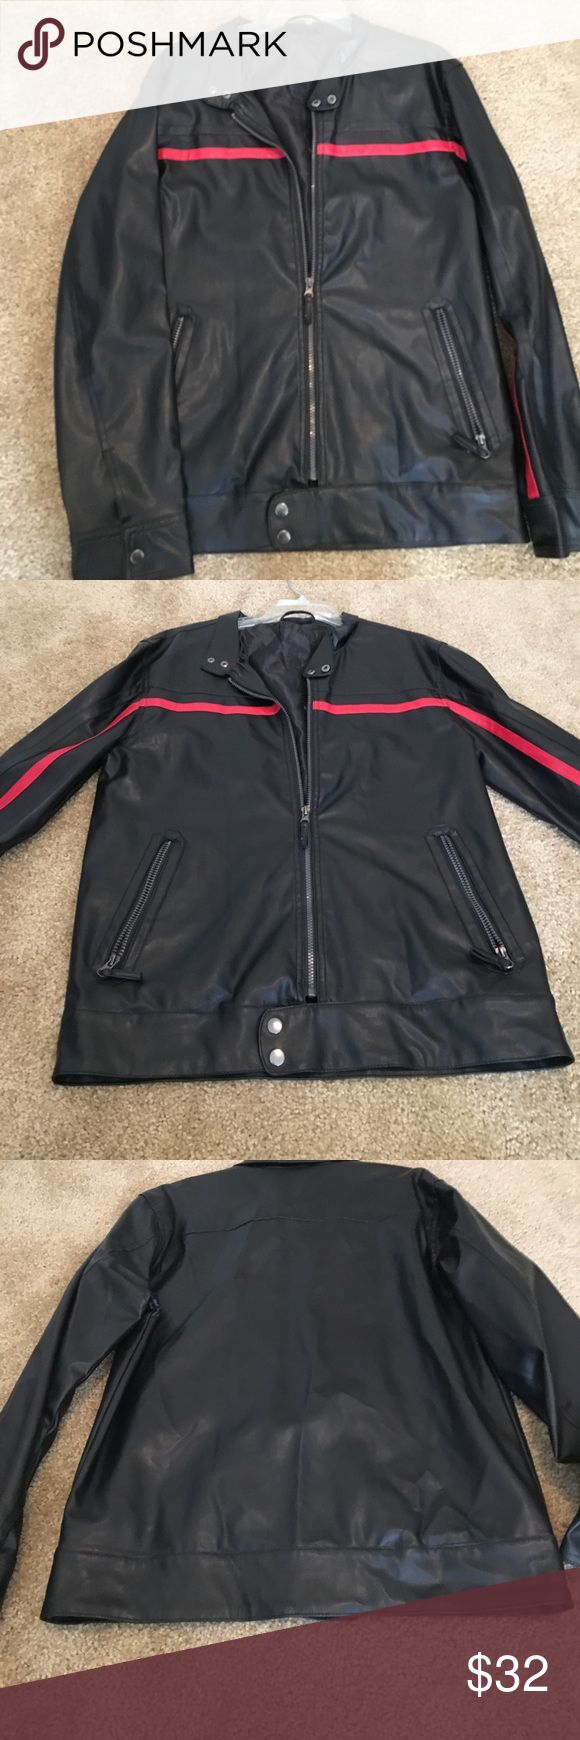 ✨Men's Faux Leather Jacket Awesome and great condition men's faux leather jacket with a red line detailing. Size medium. Jackets & Coats